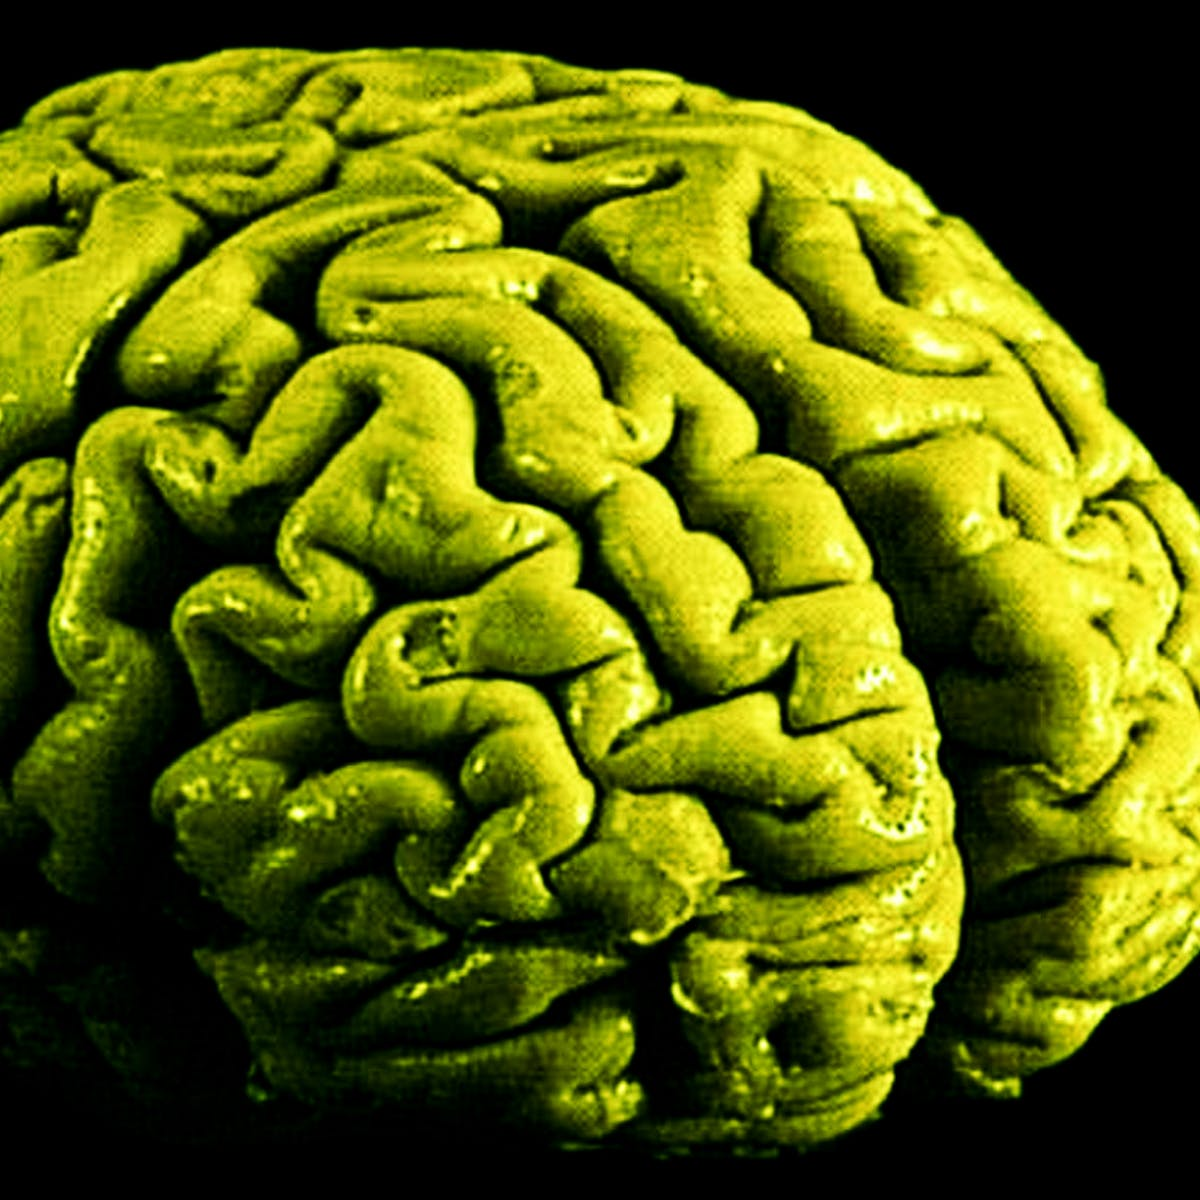 Long-Term Marijuana Use Changes Brain at the Cellular Level, Say Scientists